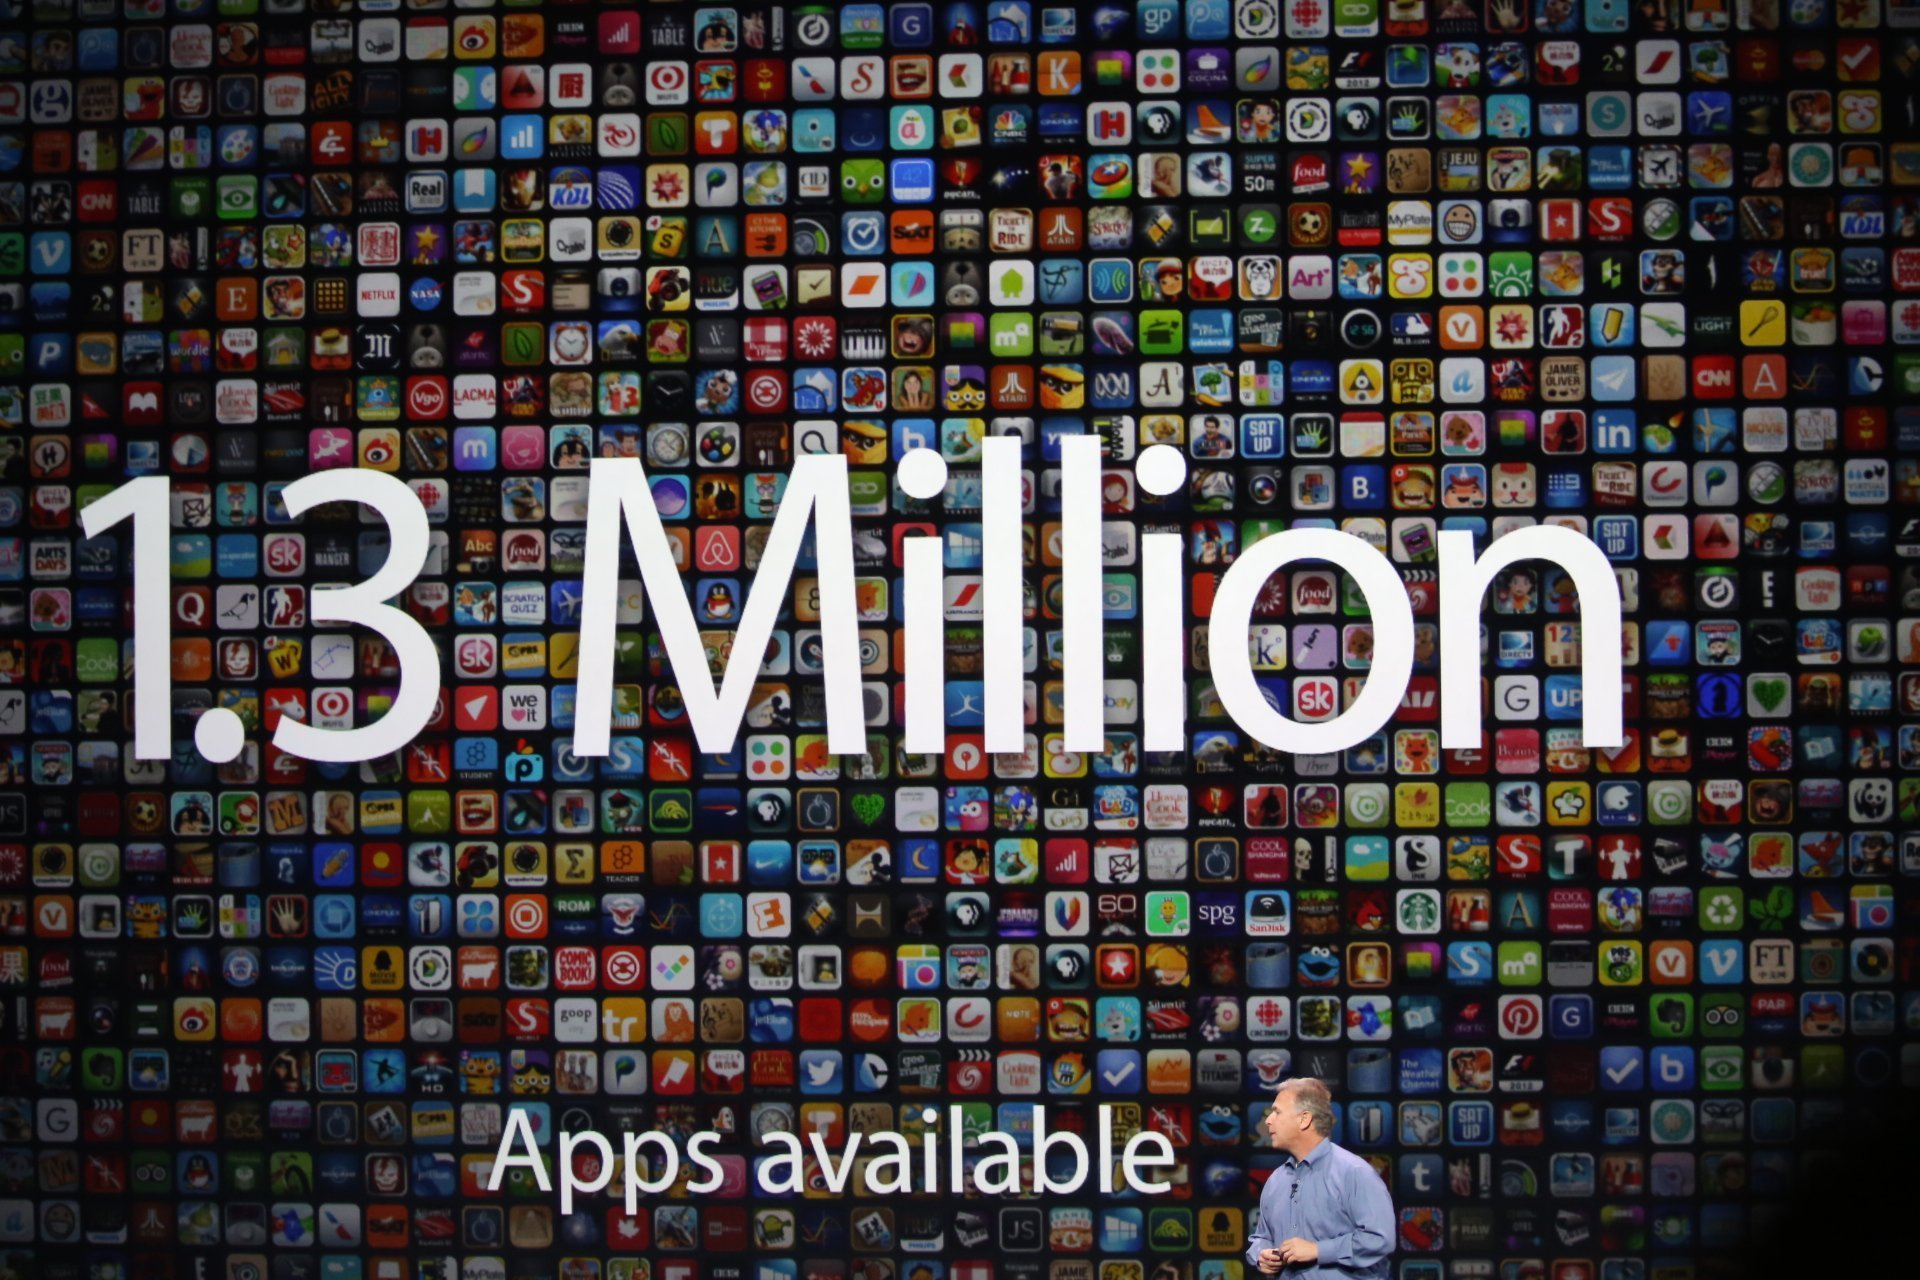 Apple: App Store Rounds 1 Million Applications